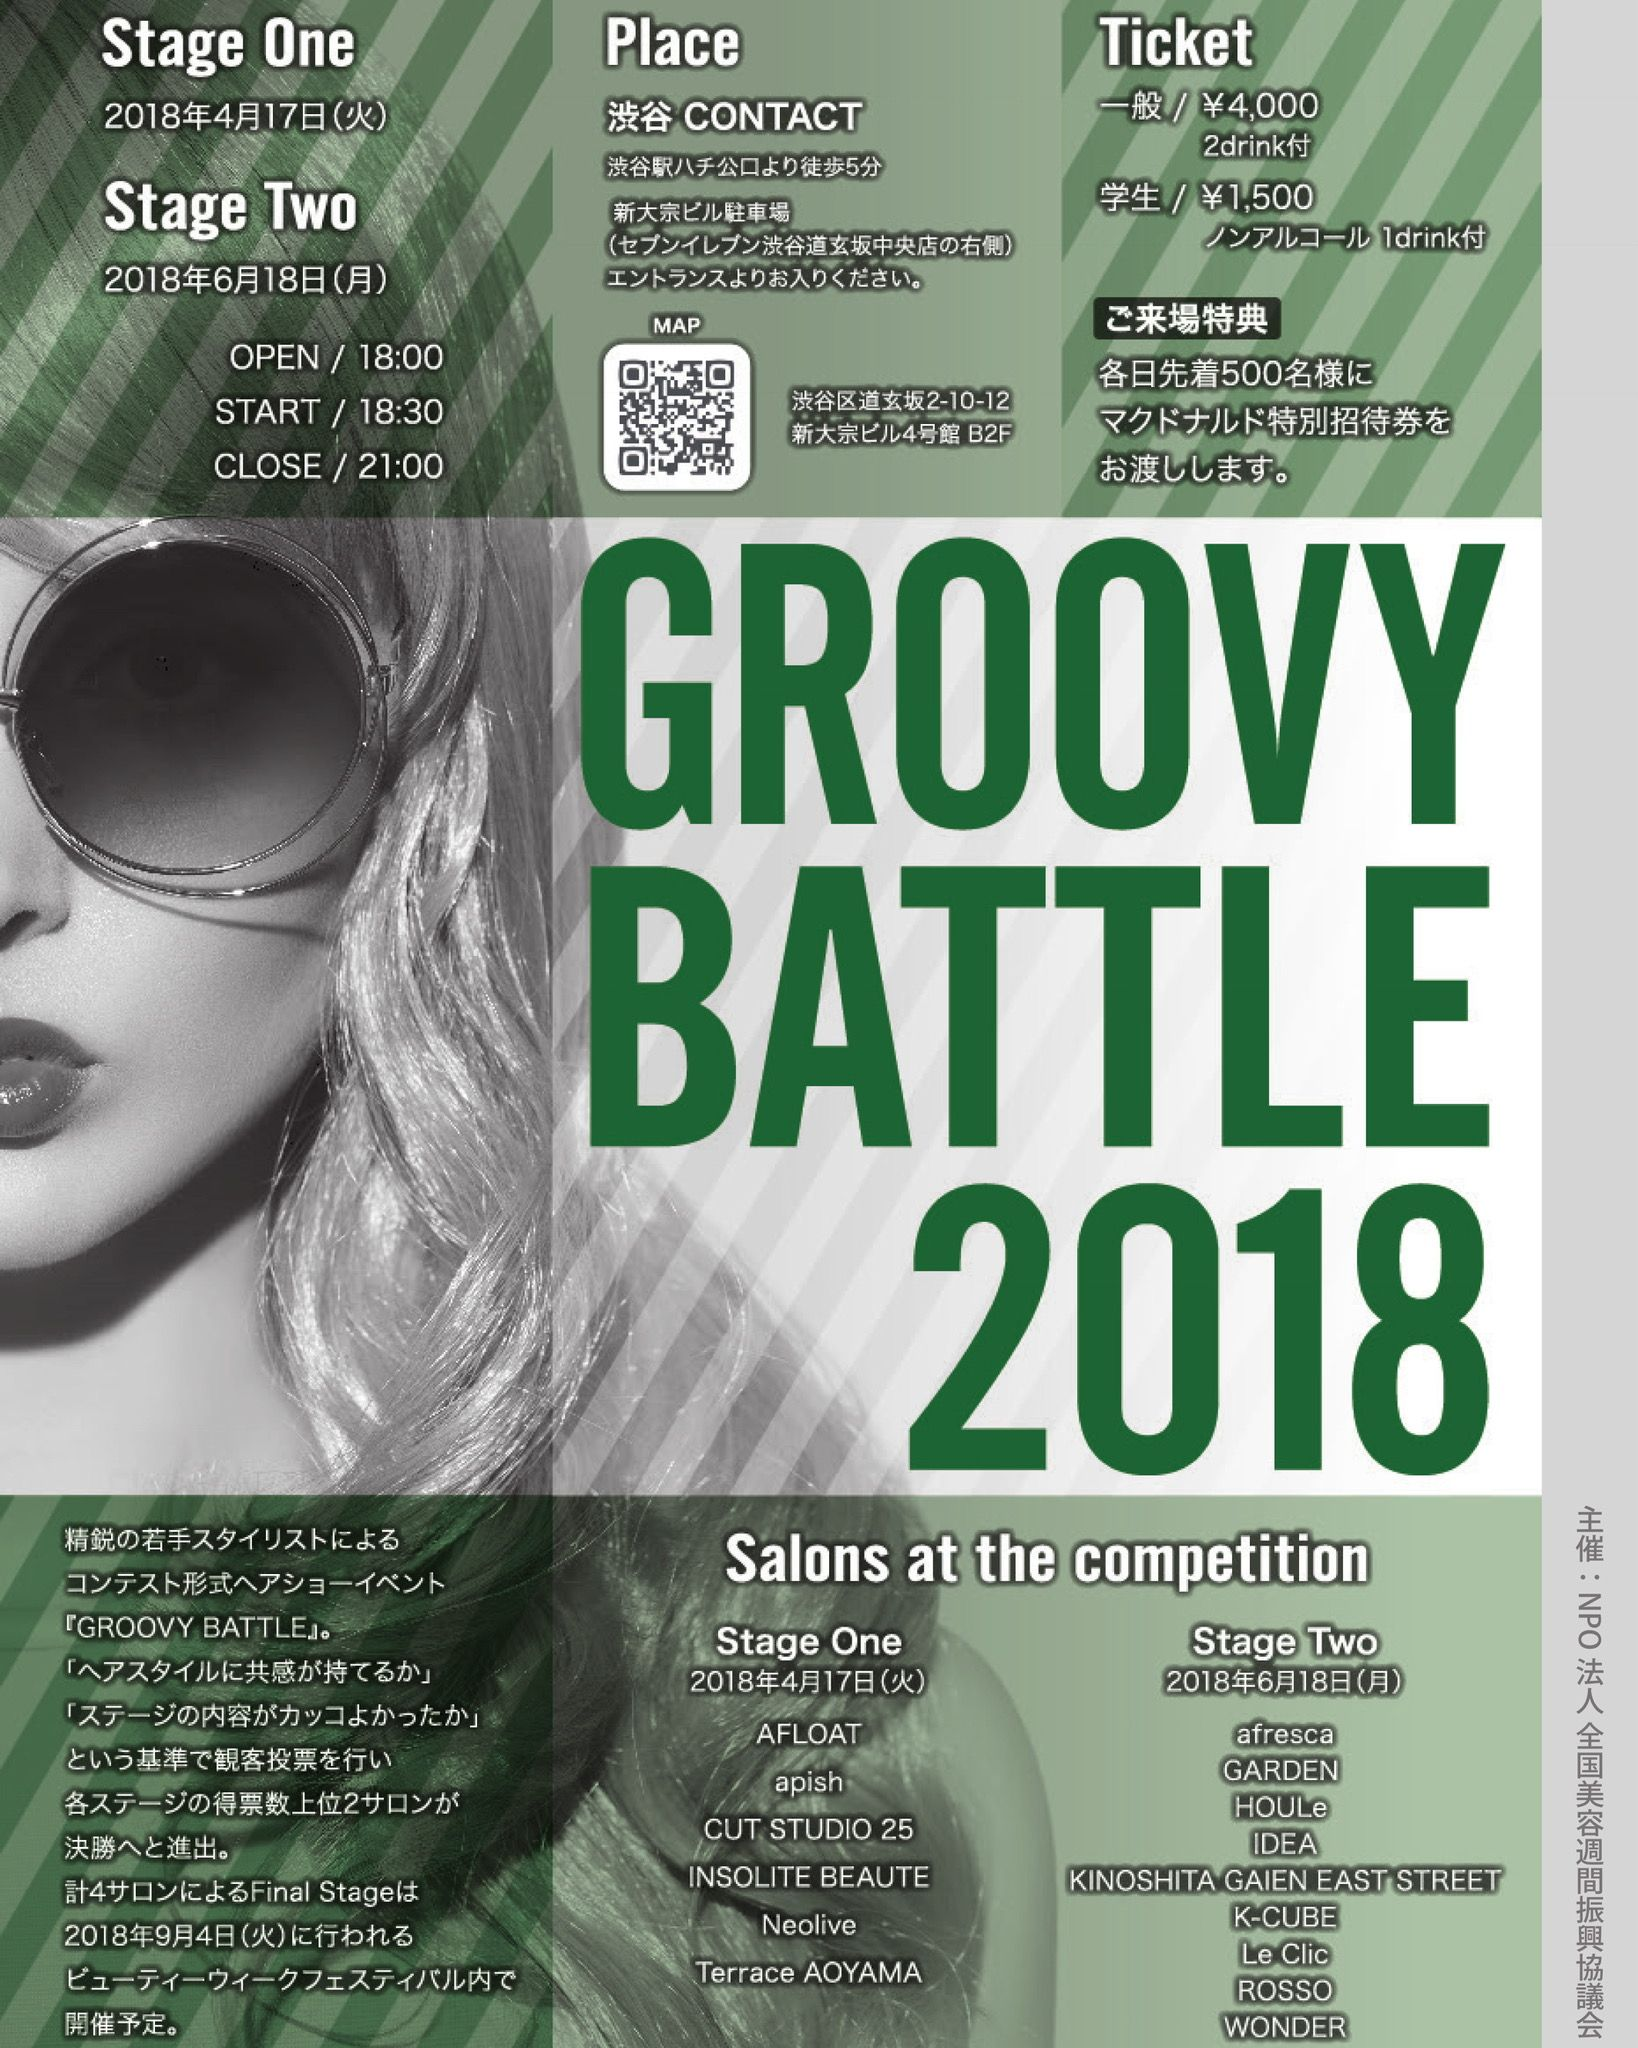 GROOVY BATTLE 2018 -Stage Two-